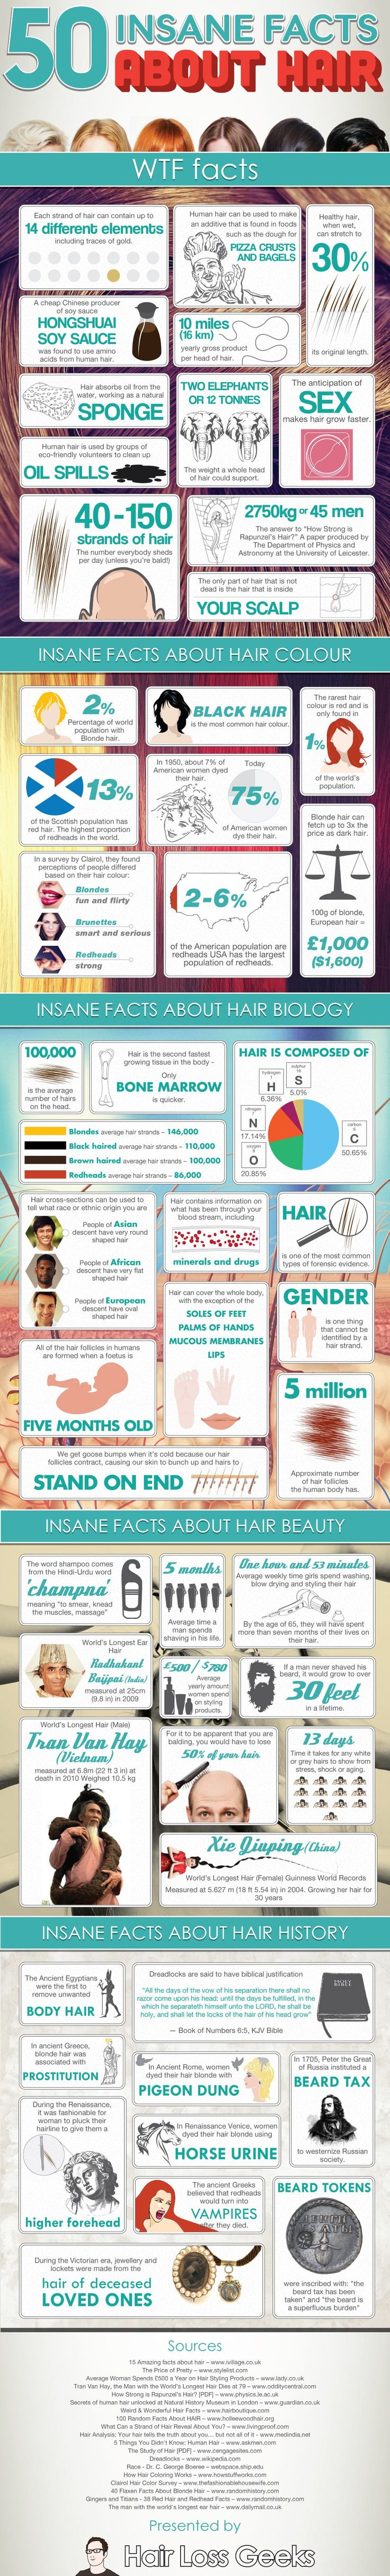 50-insane-facts-about-hair-infographic